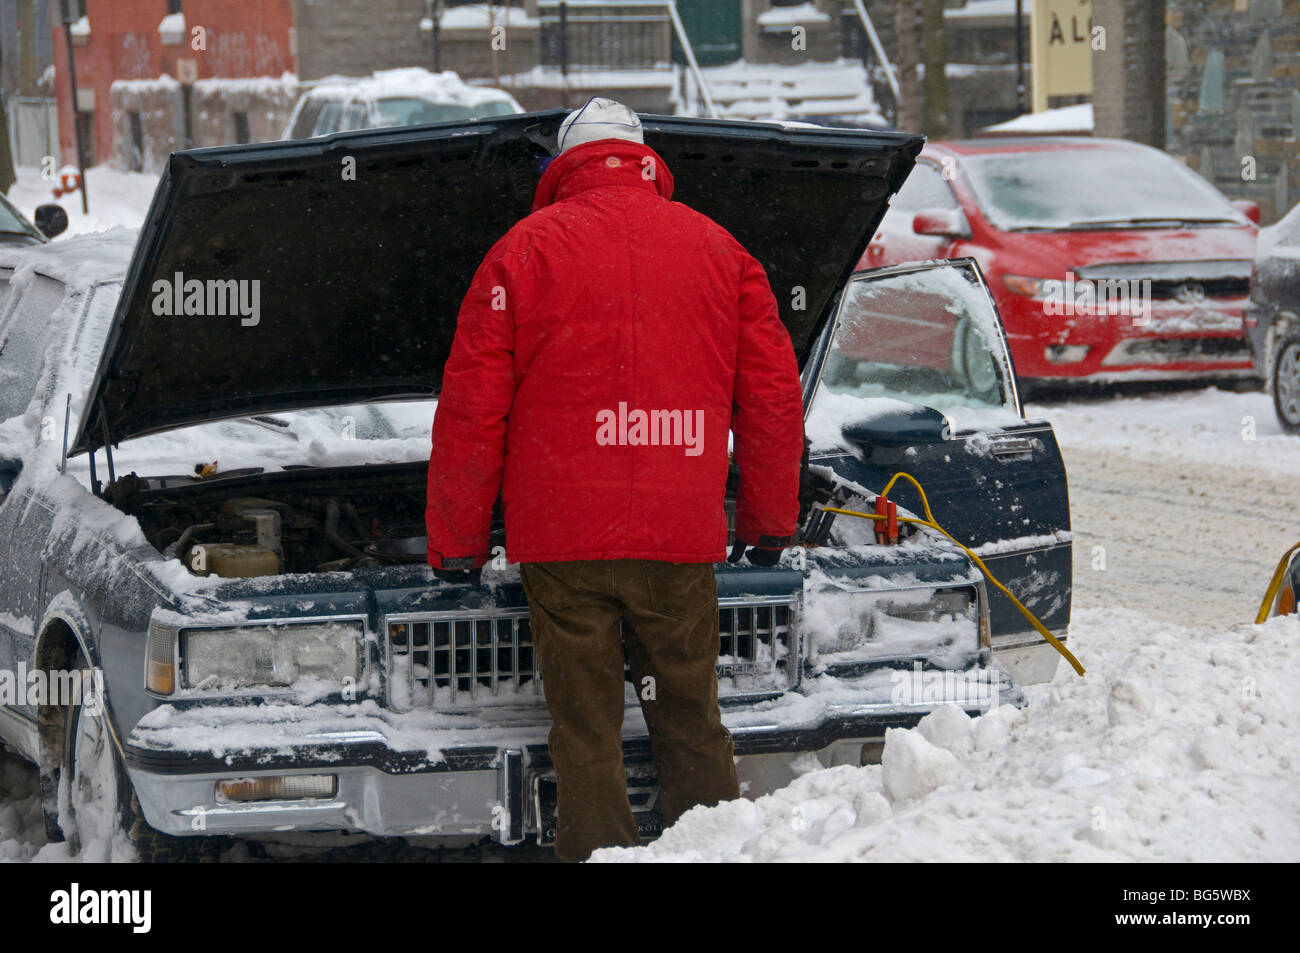 Boosting car battery in winter - Stock Image